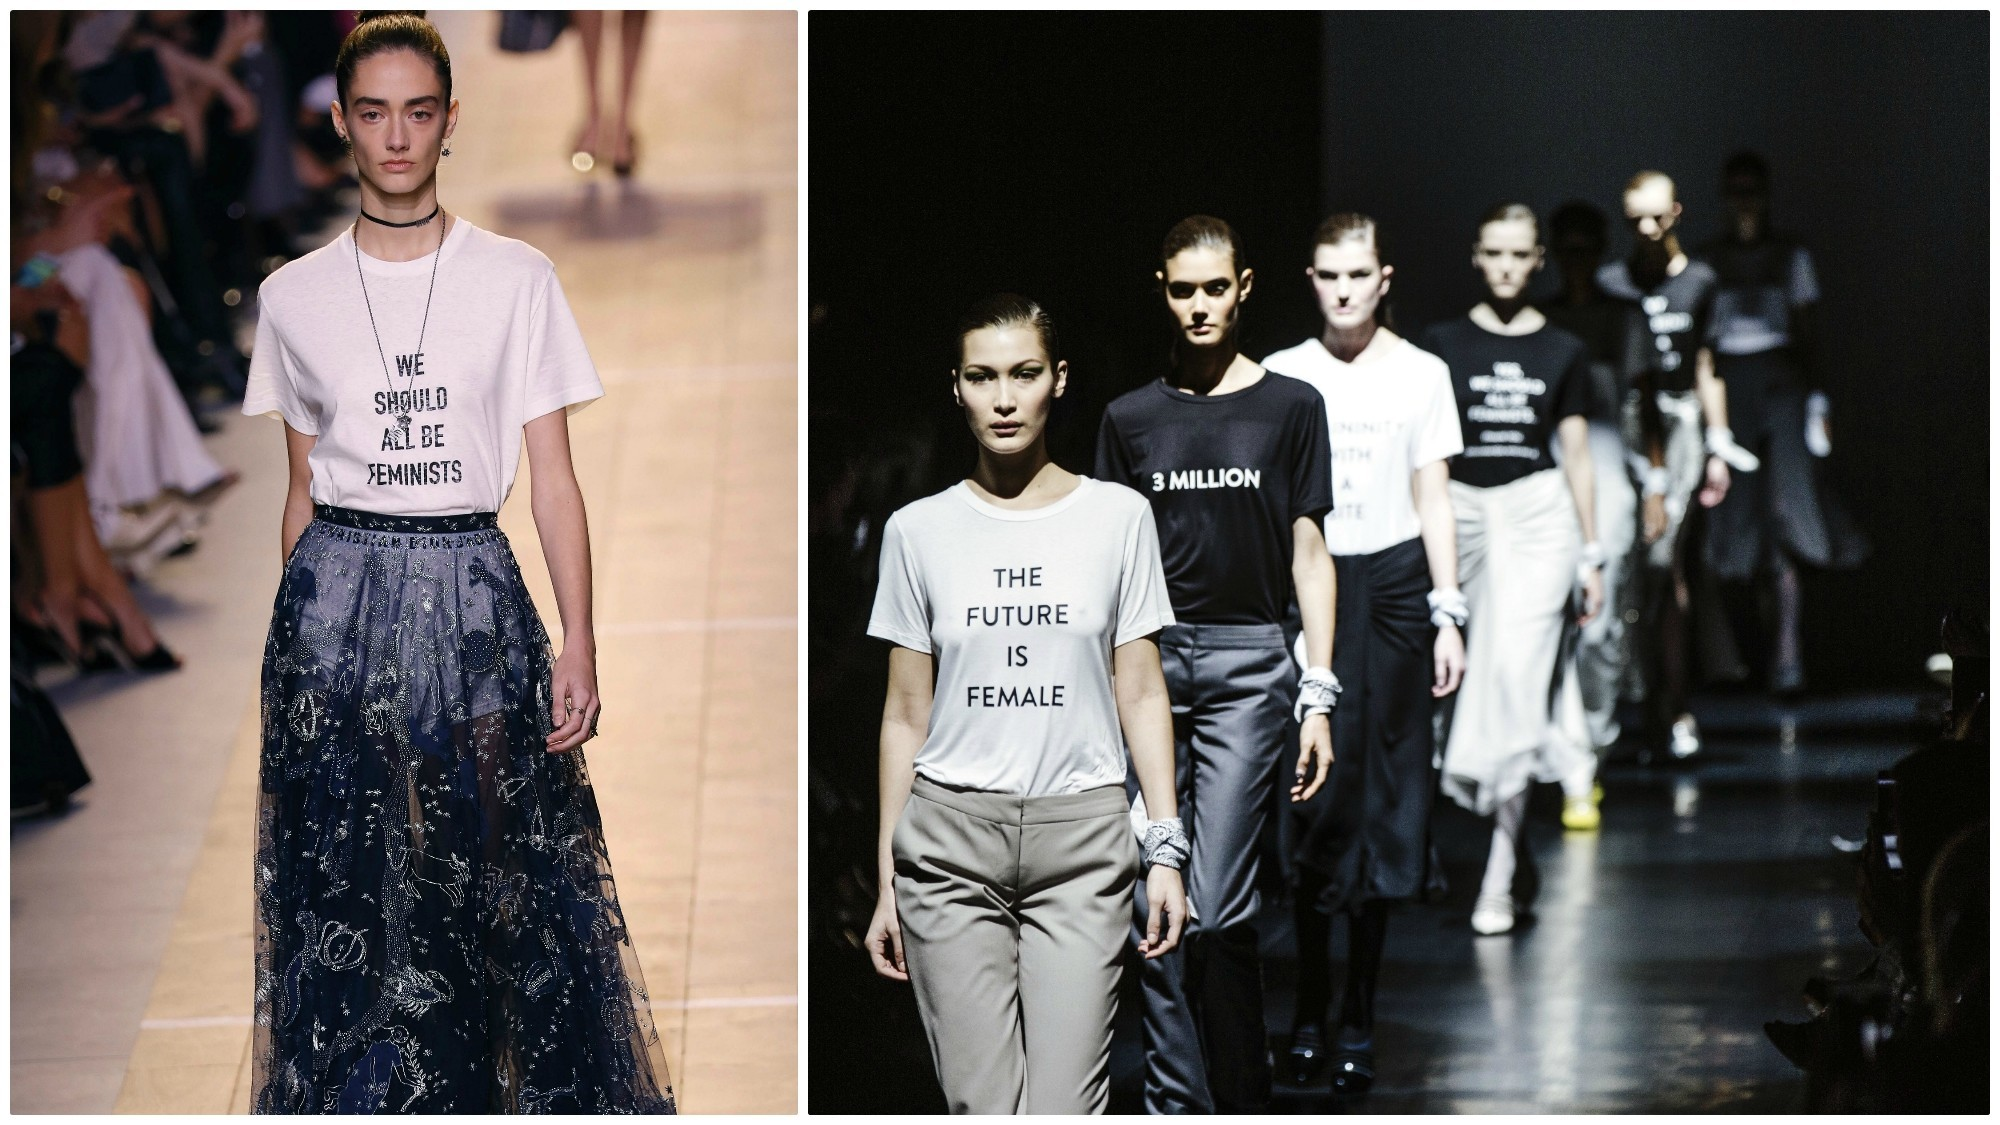 """At left, a model wears a """"We should all be feminists"""" T-shirt on the Dior runway in September 2016. At right, the Prabal Gurung runway finale at New York Fashion Week in February 2017, one of the many shows that used the runway for political messaging."""